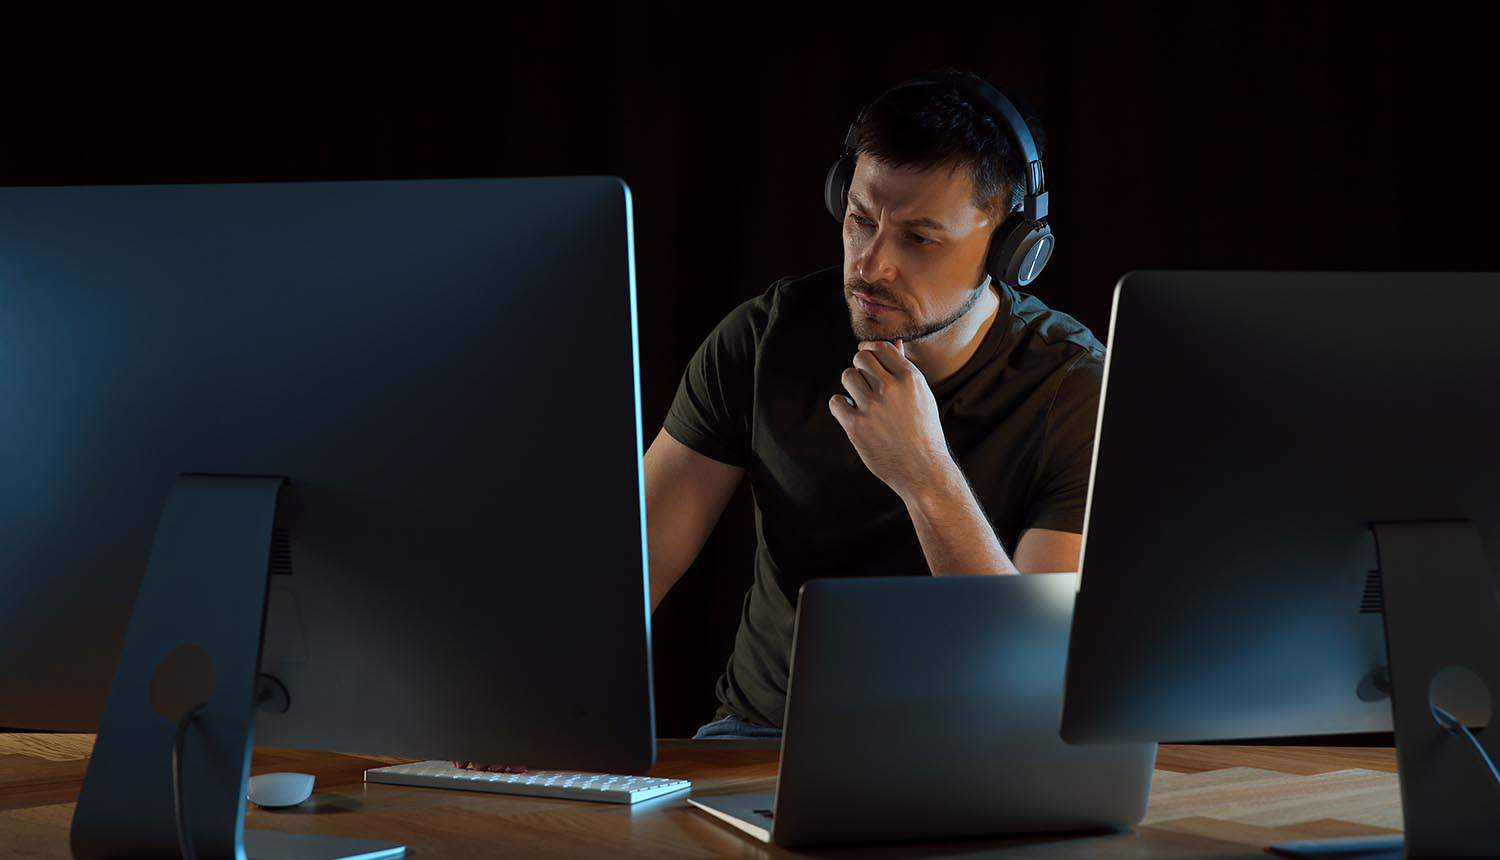 Programmer with headphones working in office at night showing use of devsecops